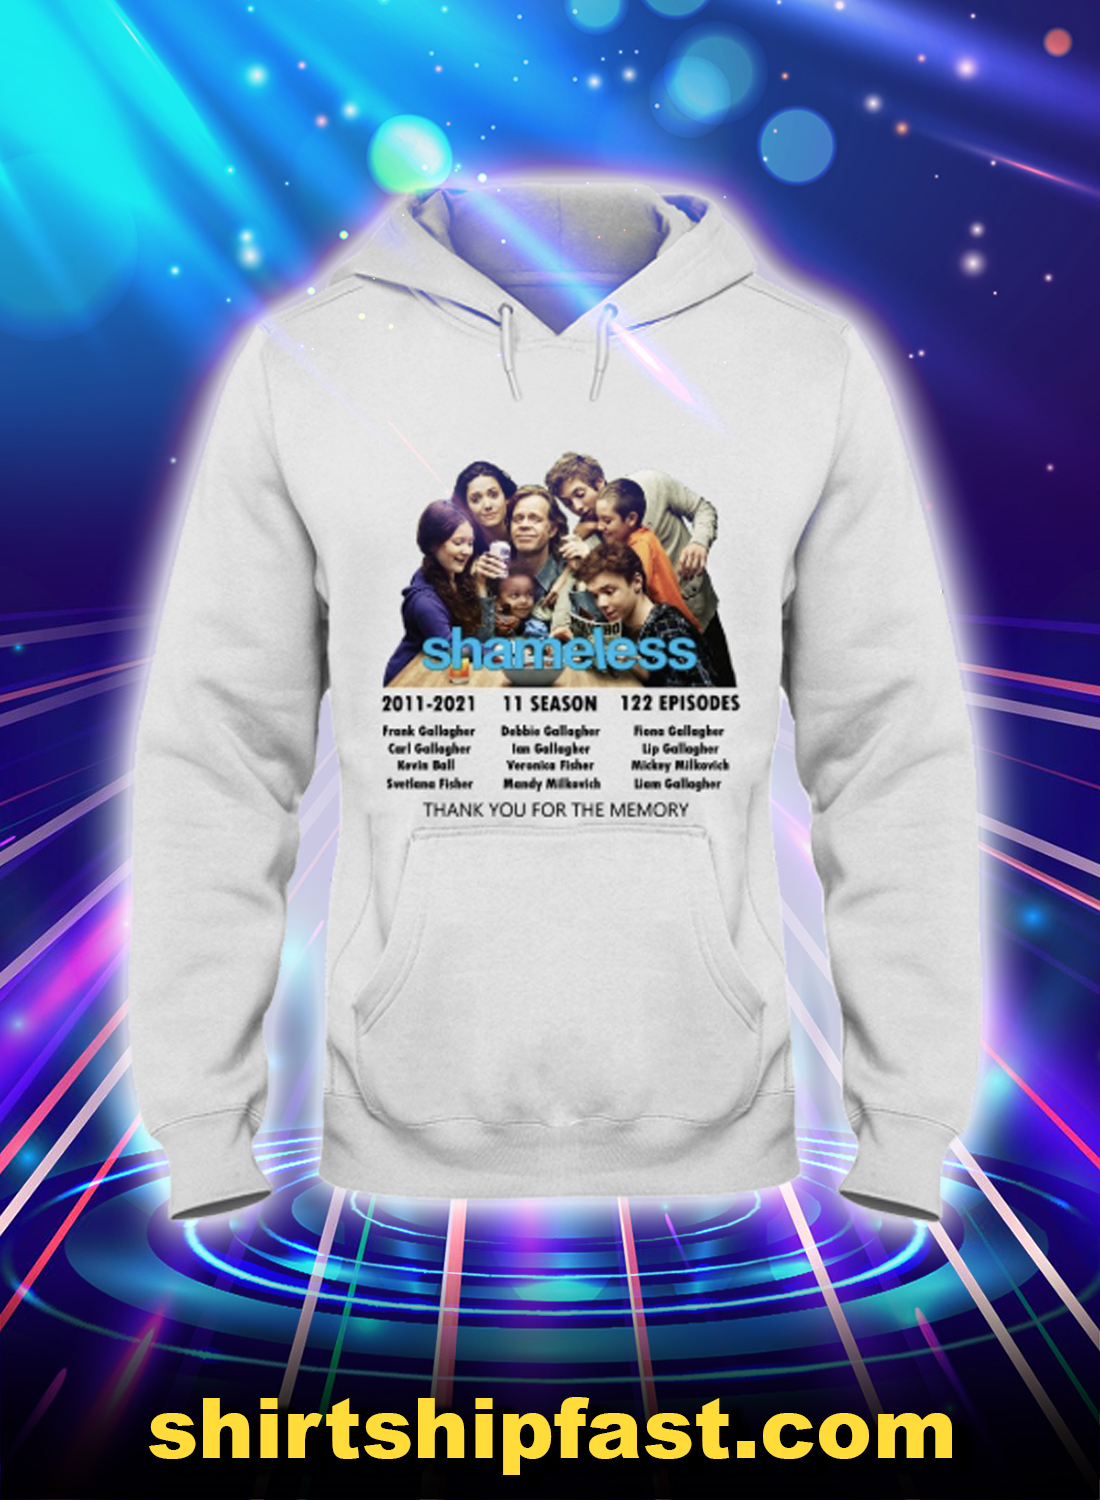 Shameless 2011 2021 thank you for the memory hoodie